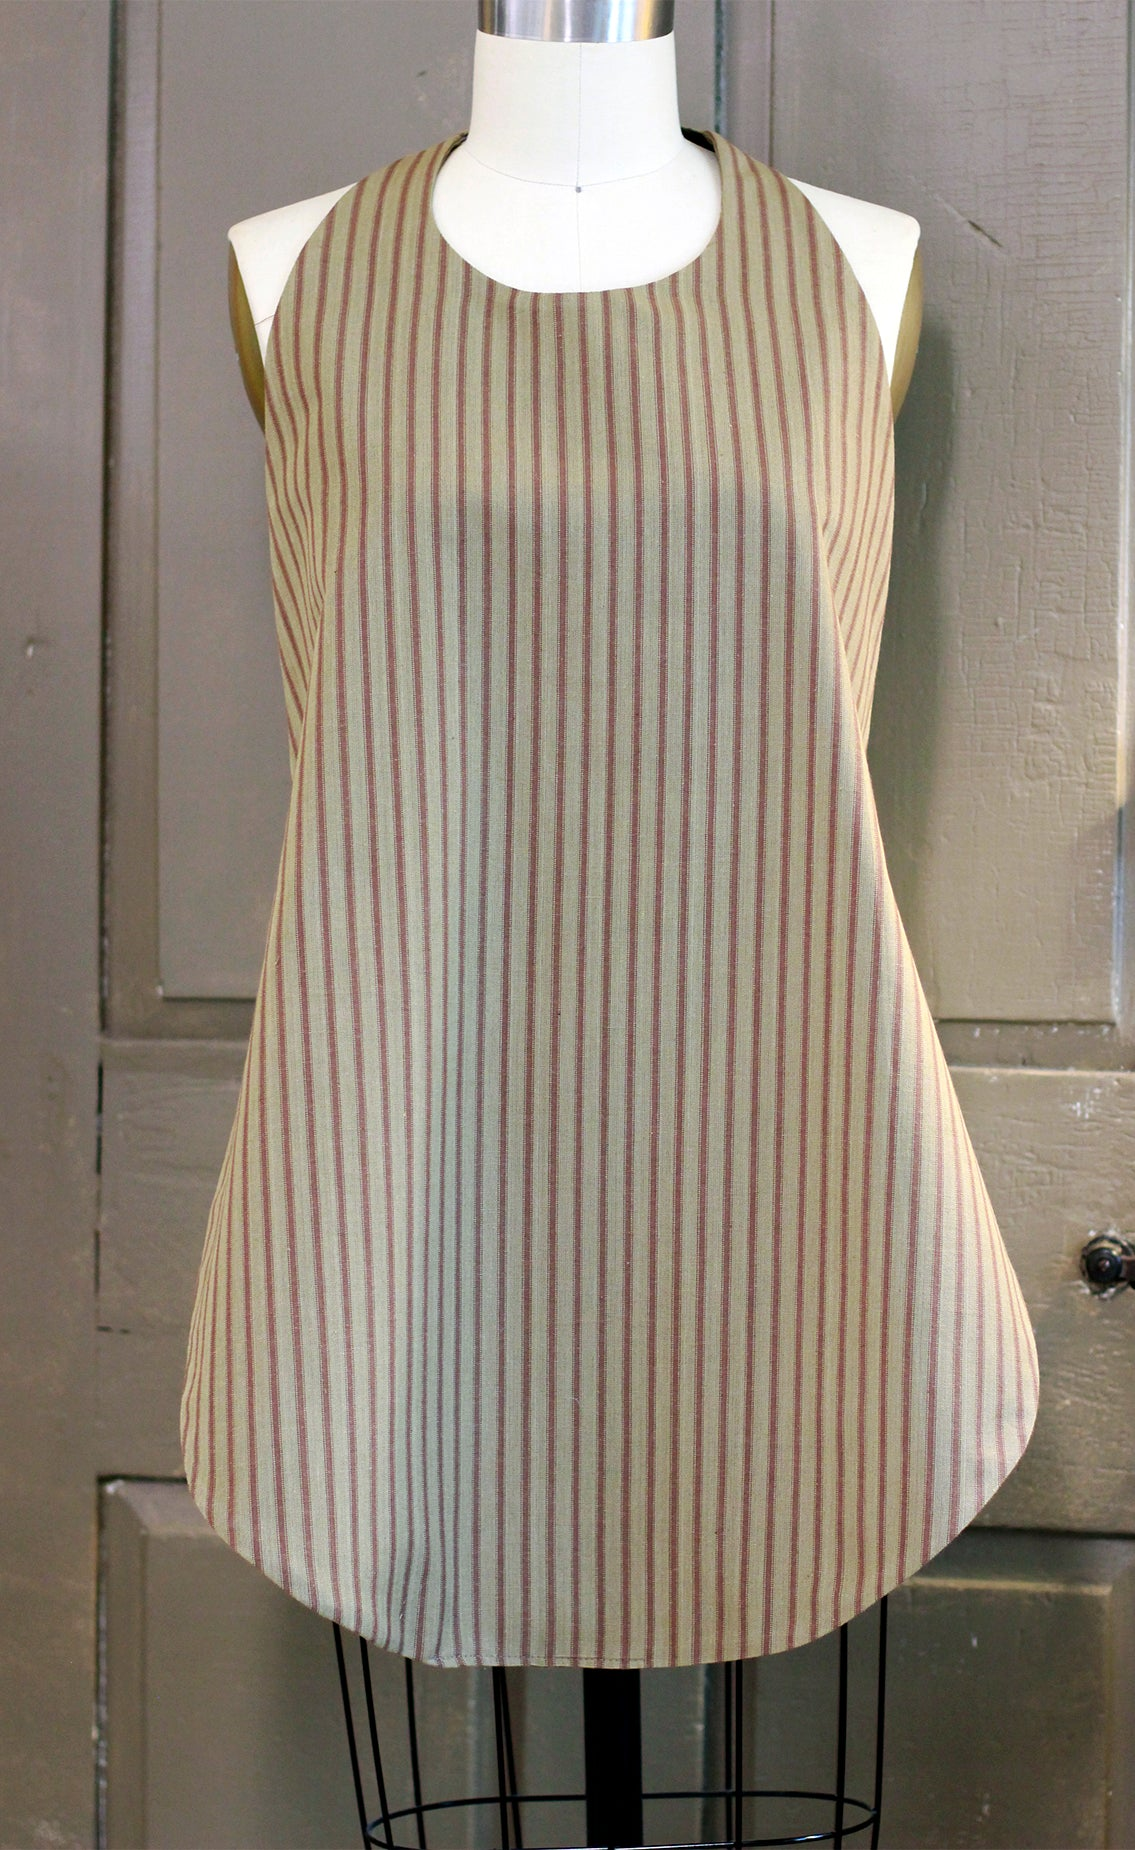 Bib for Adults in Brown Stripe Homespun